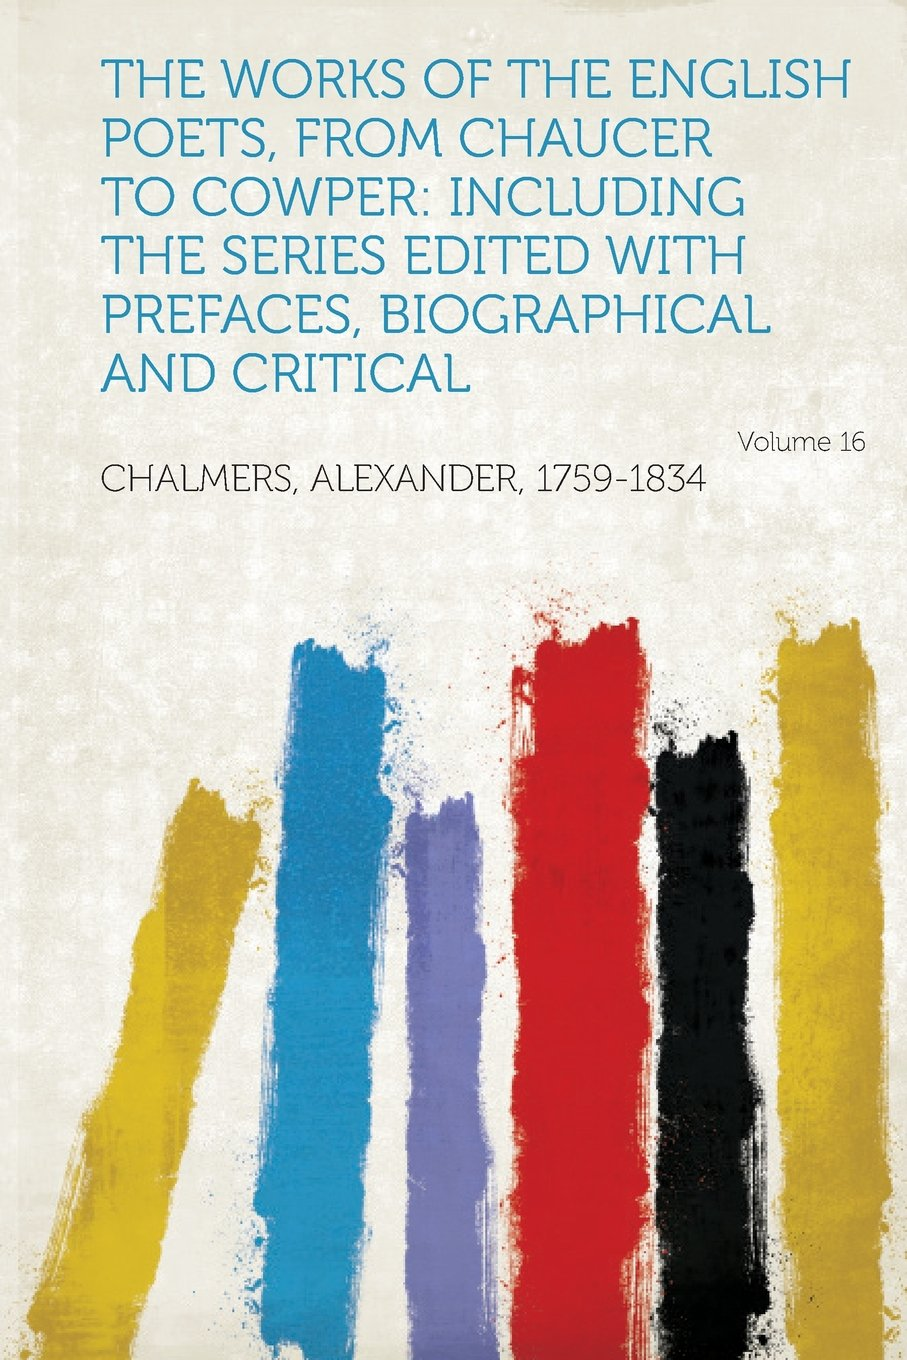 Read Online The Works of the English Poets, from Chaucer to Cowper: Including the Series Edited with Prefaces, Biographical and Critical Volume 16 PDF